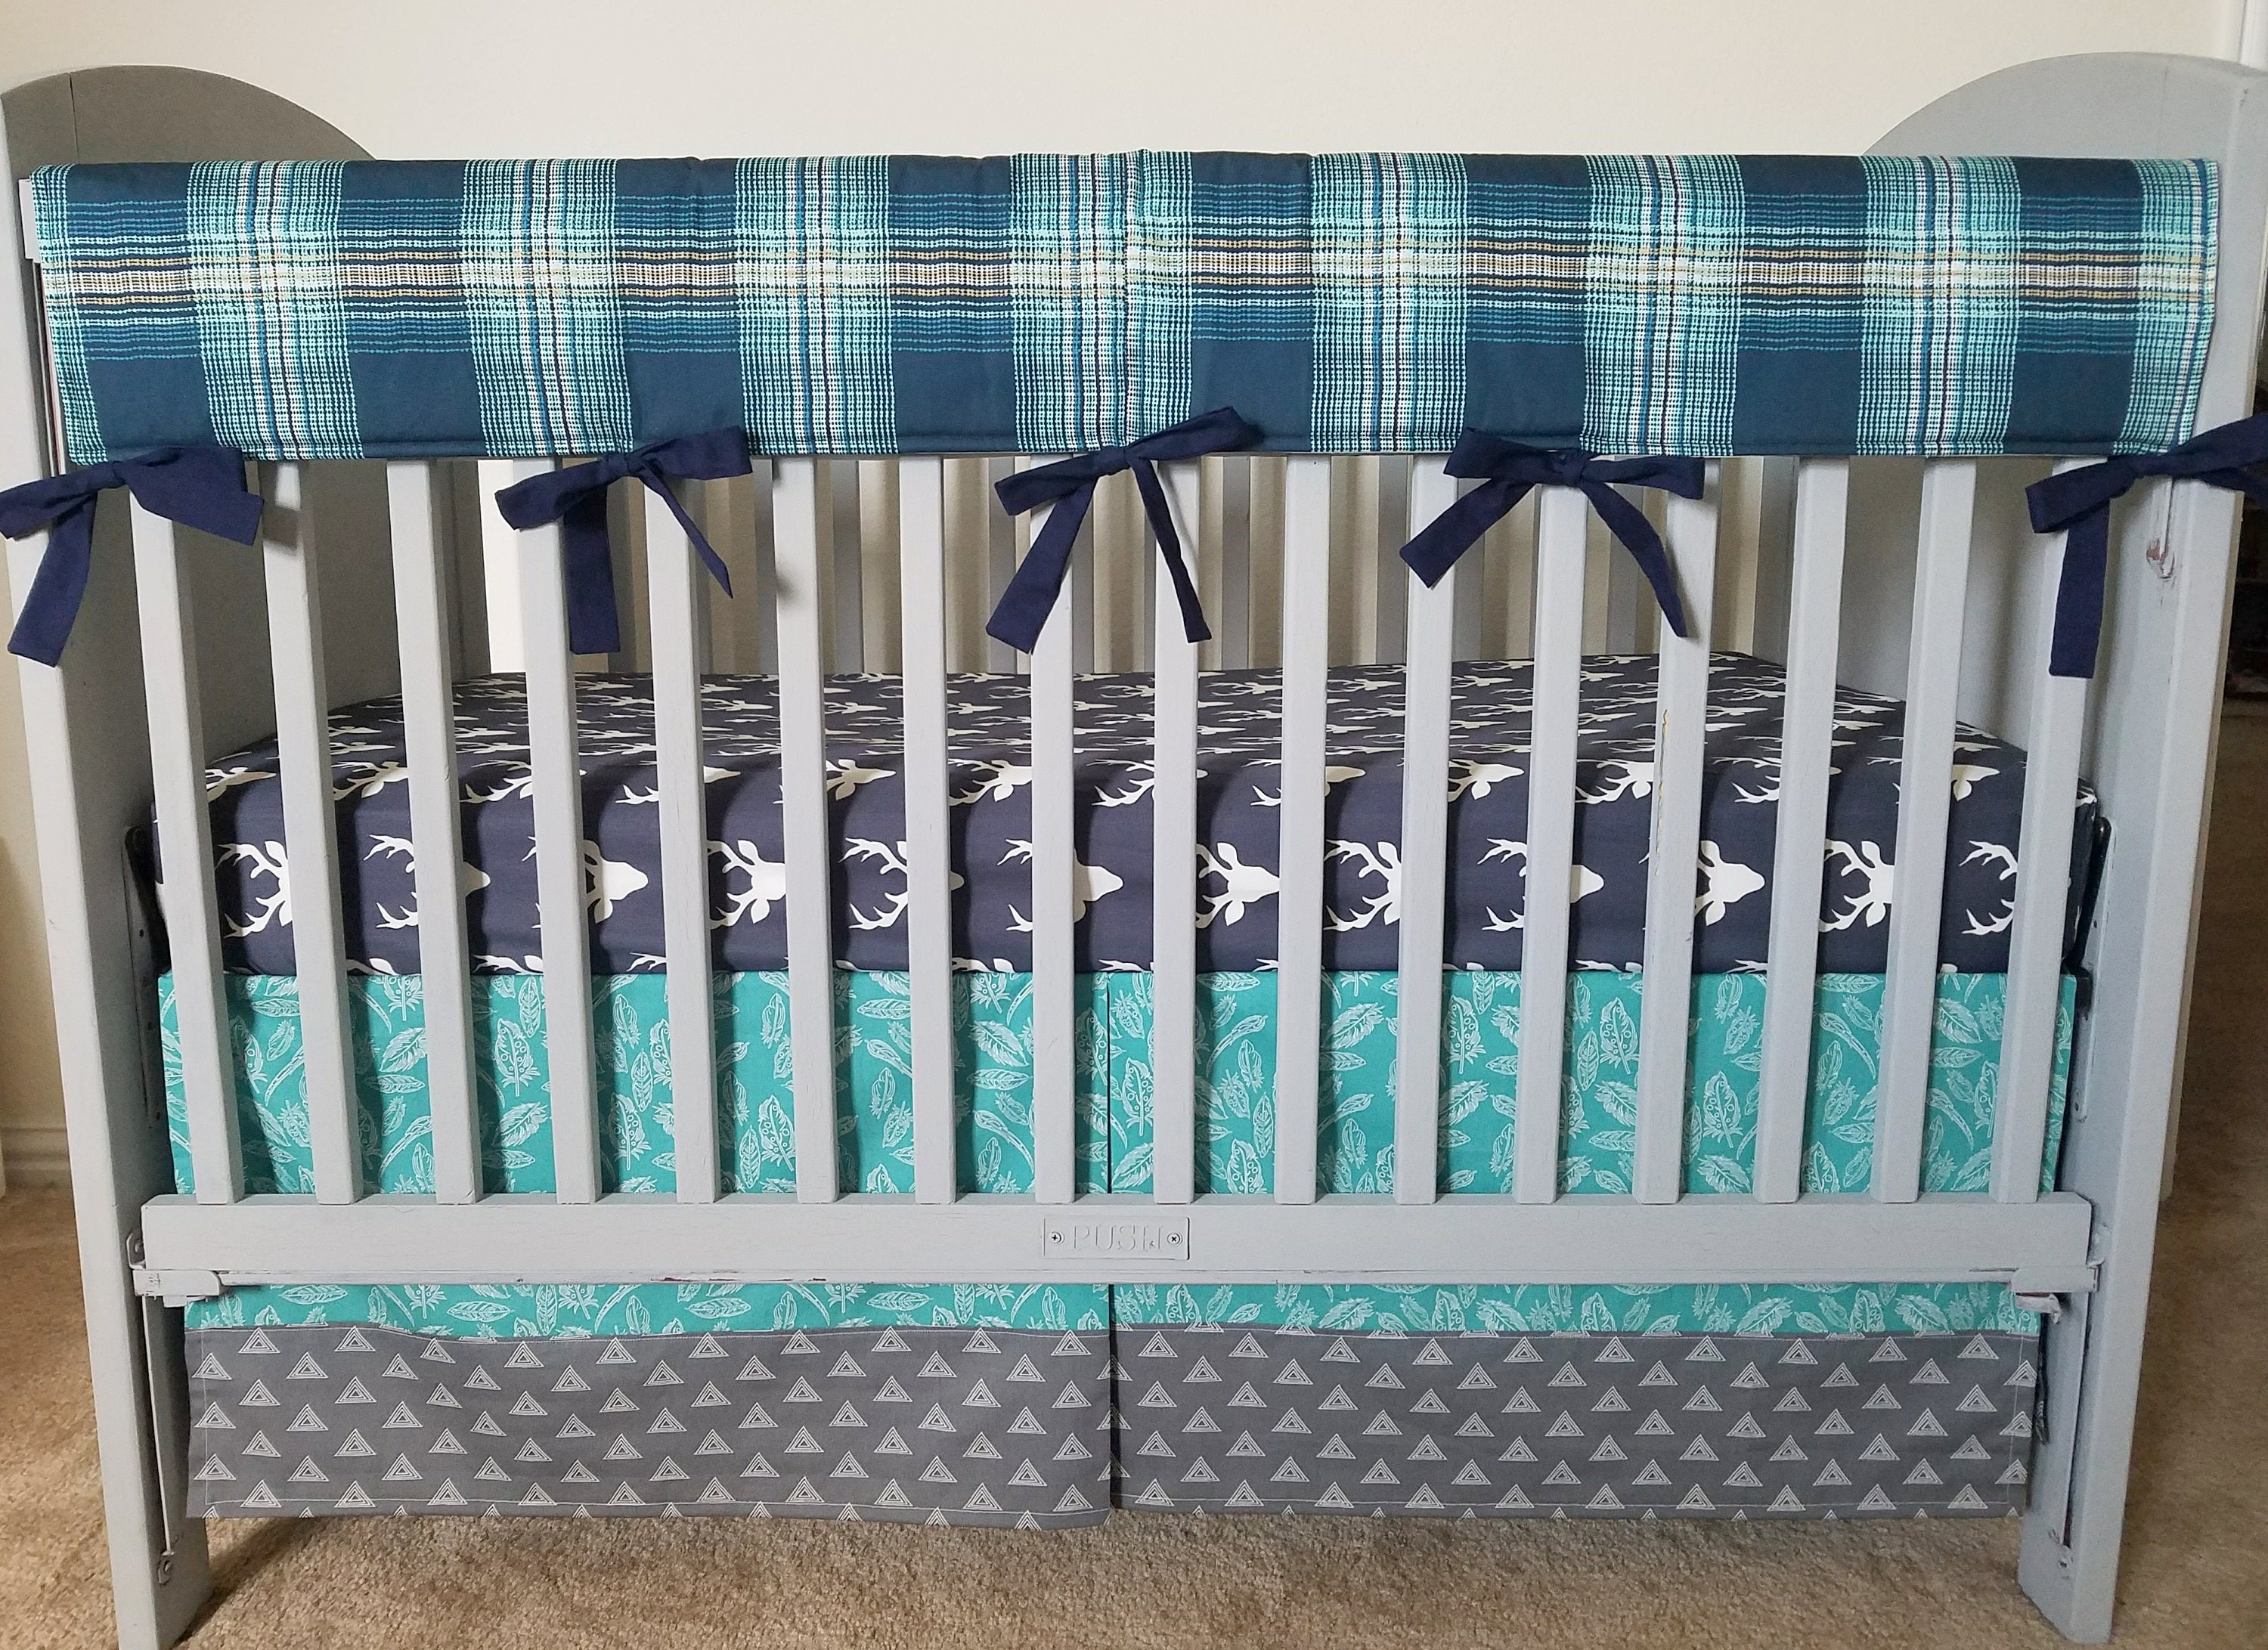 stupendous cribs stripe girl baby navy appealing chevron plaid collection crib surprising light linen sweet jojo and valance green window boy designs bedding by blue lime